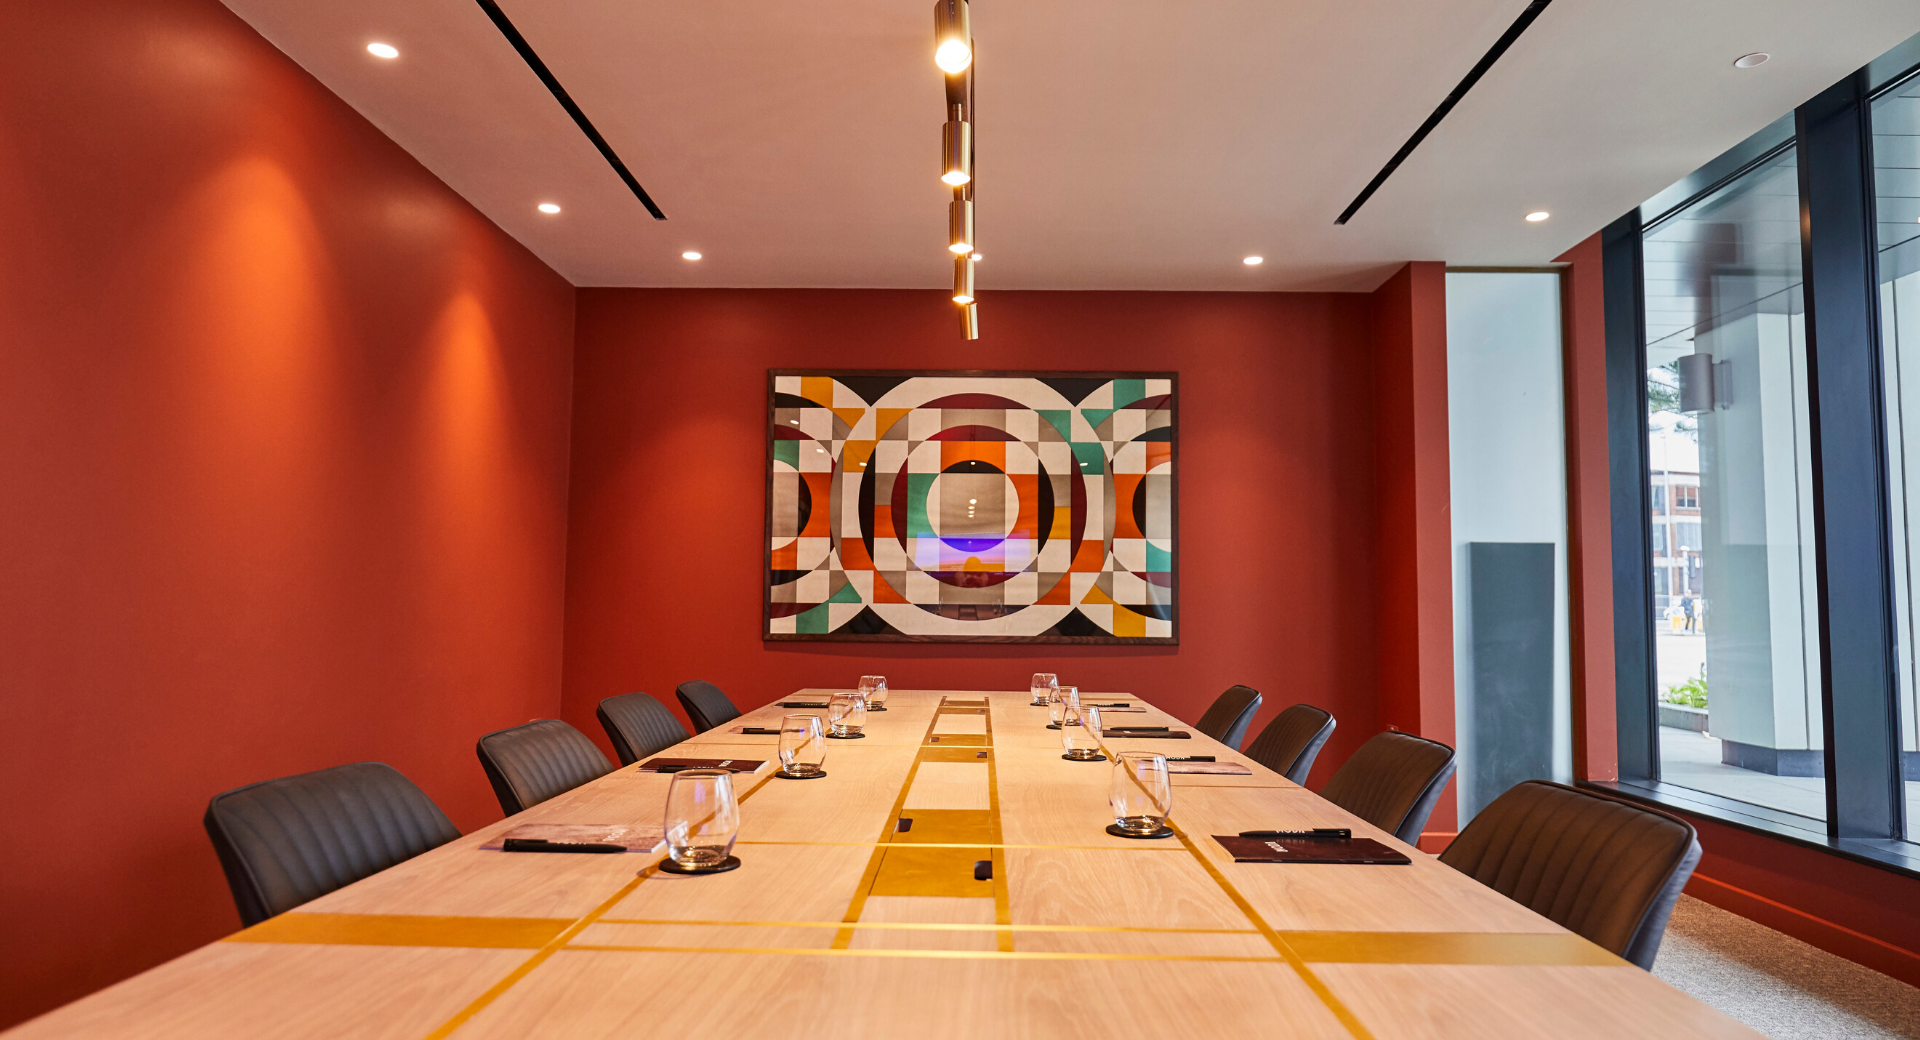 Meeting room with large table and artwork